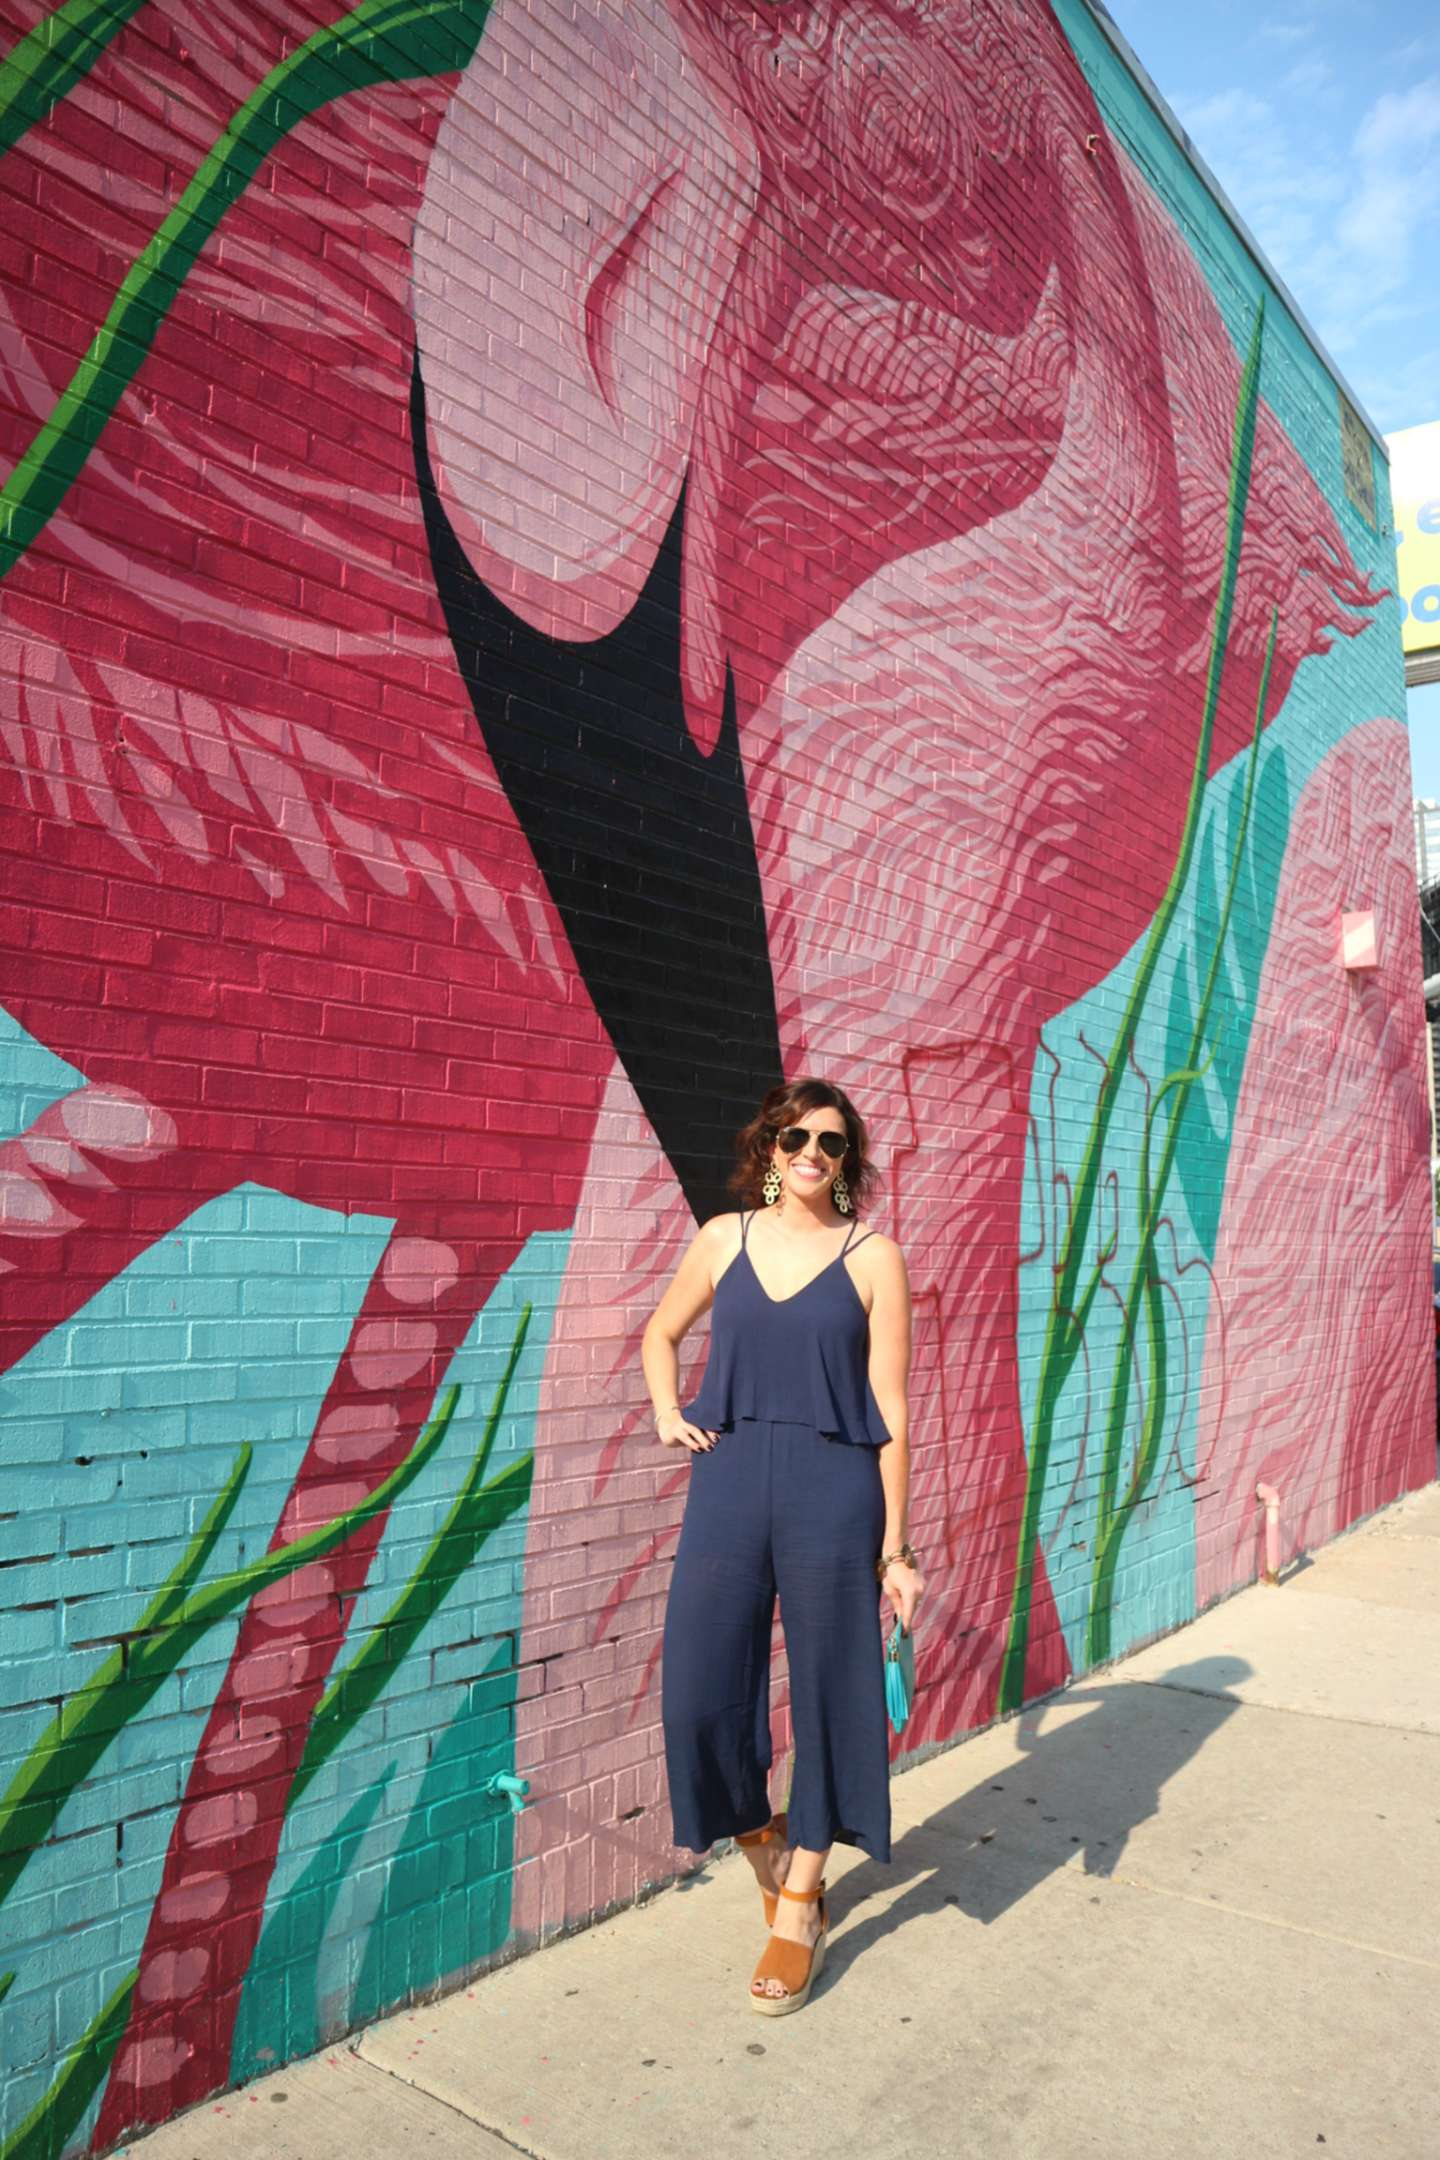 Friday Favorites: Chicago Outfits by NC fashion blogger I'm Fixin' To @mbg0112